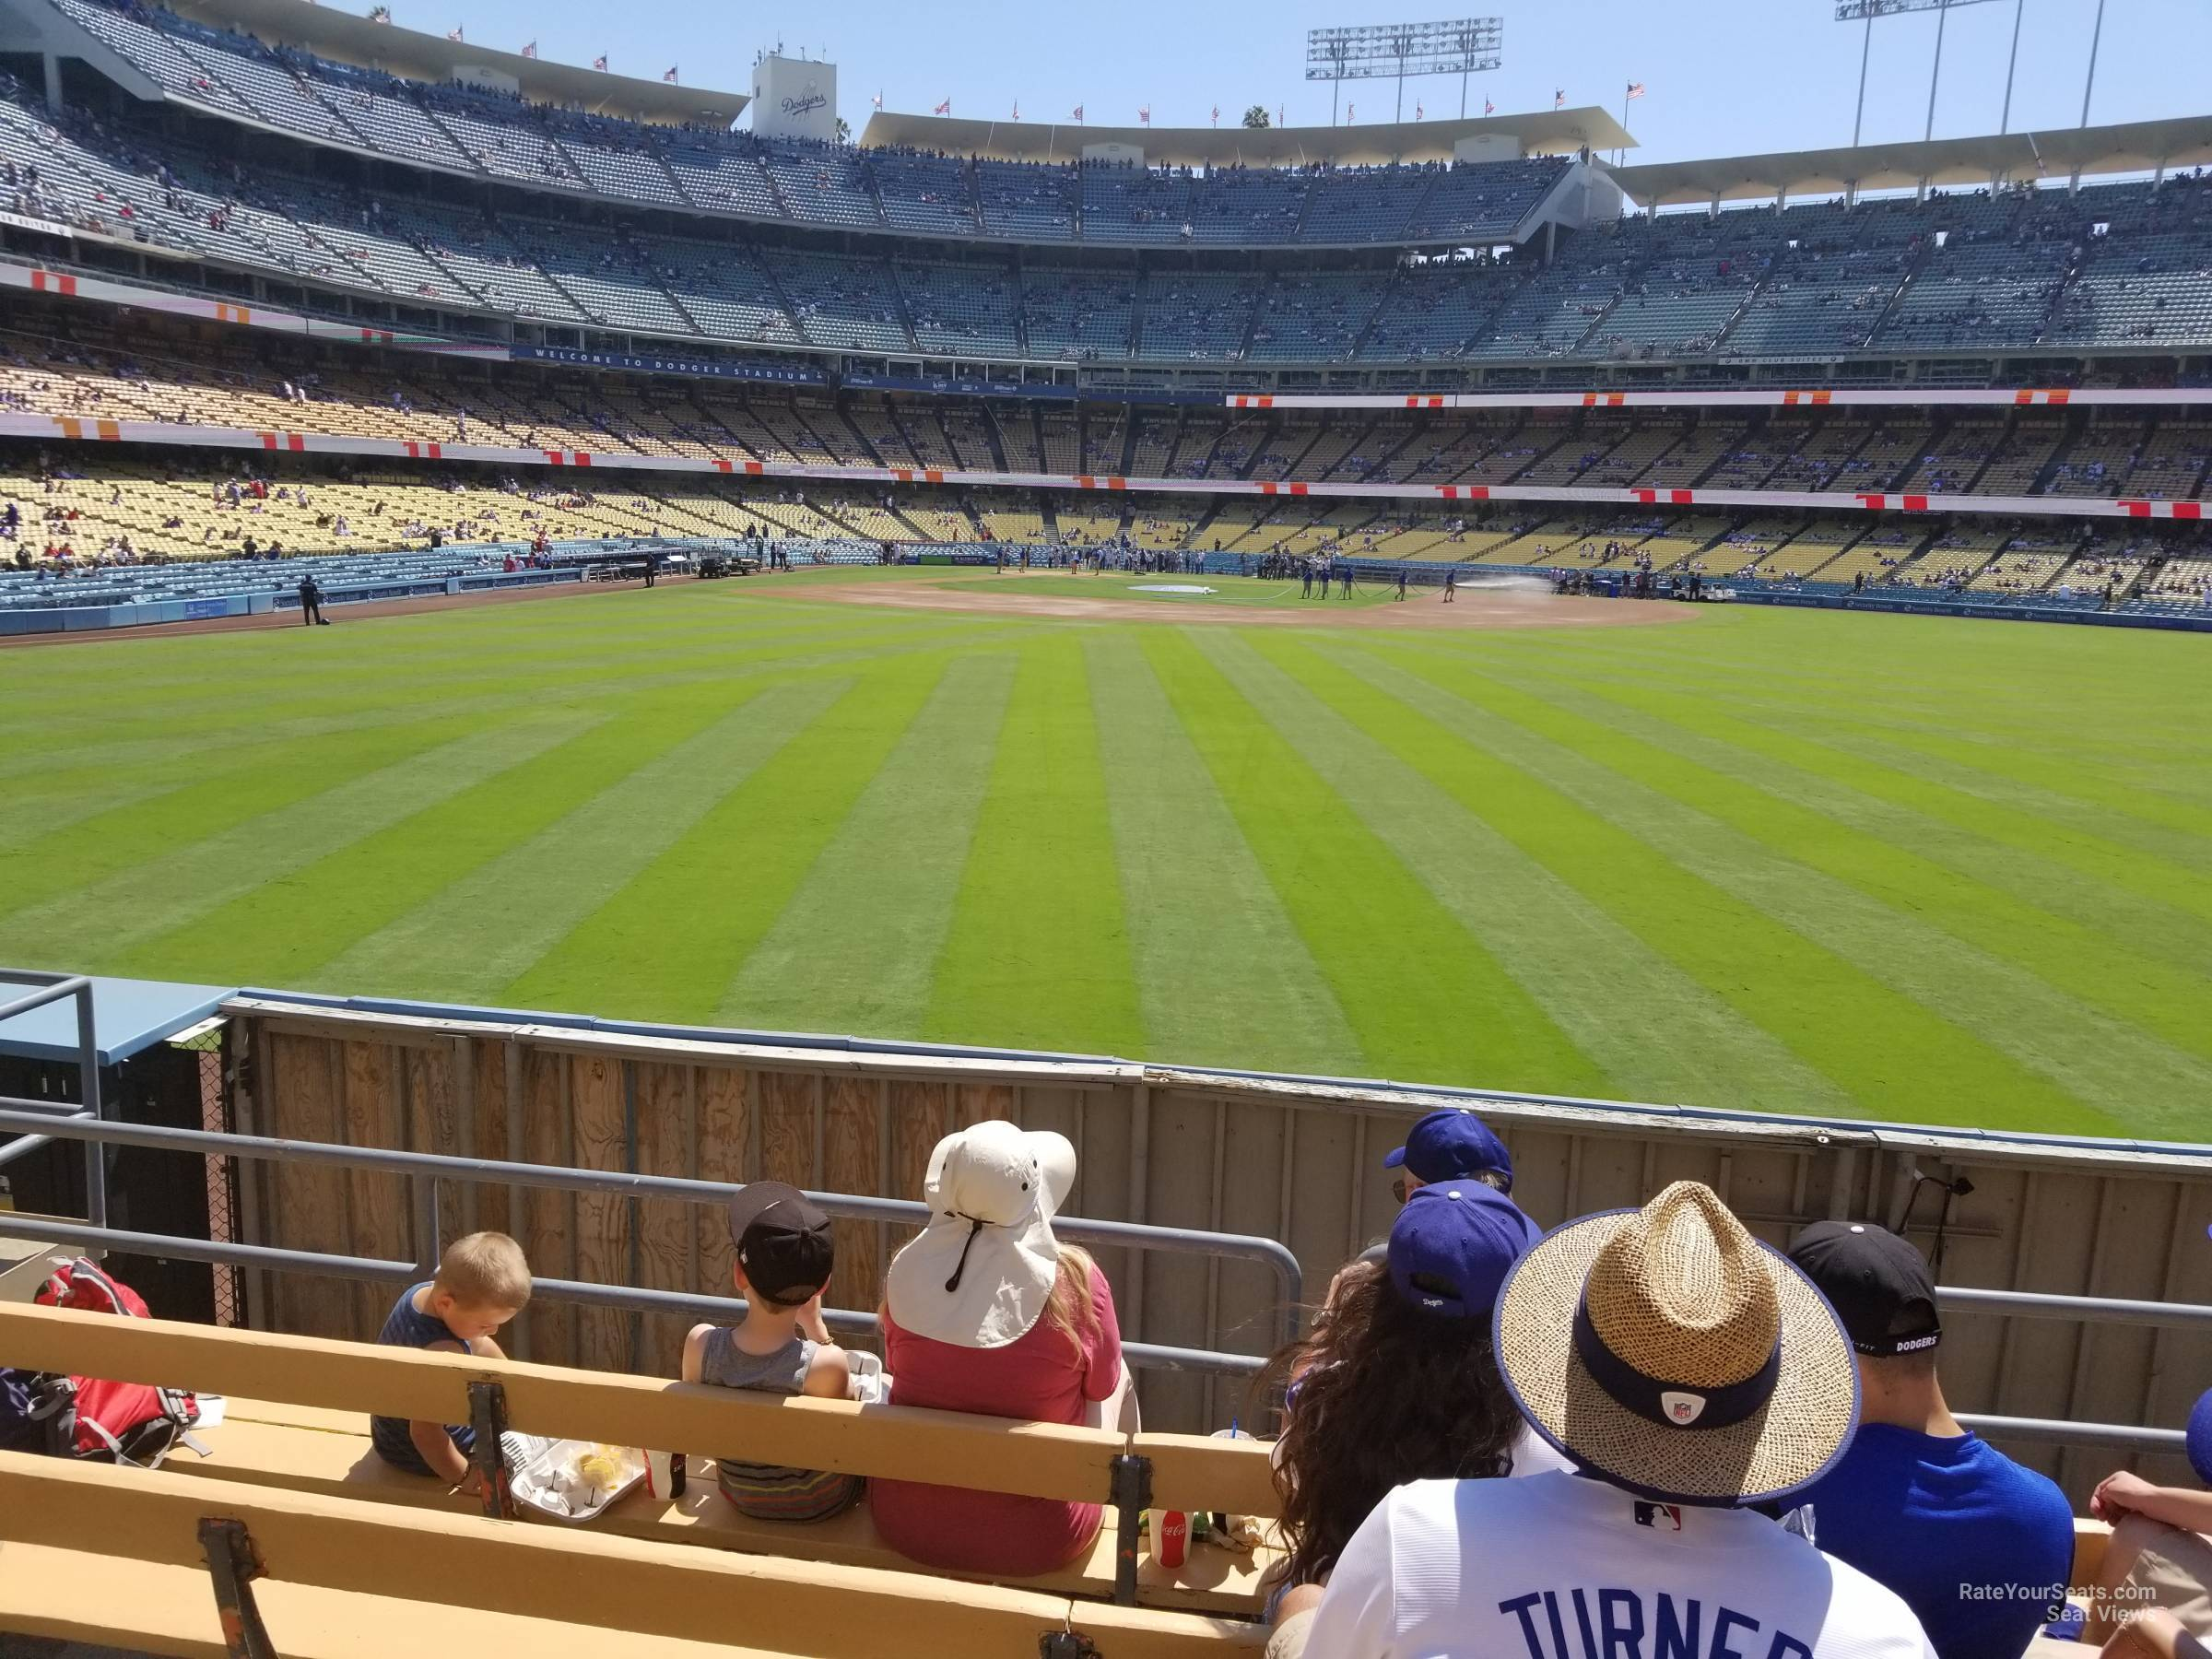 Dodger Stadium Section 308 - RateYourSeats.com on